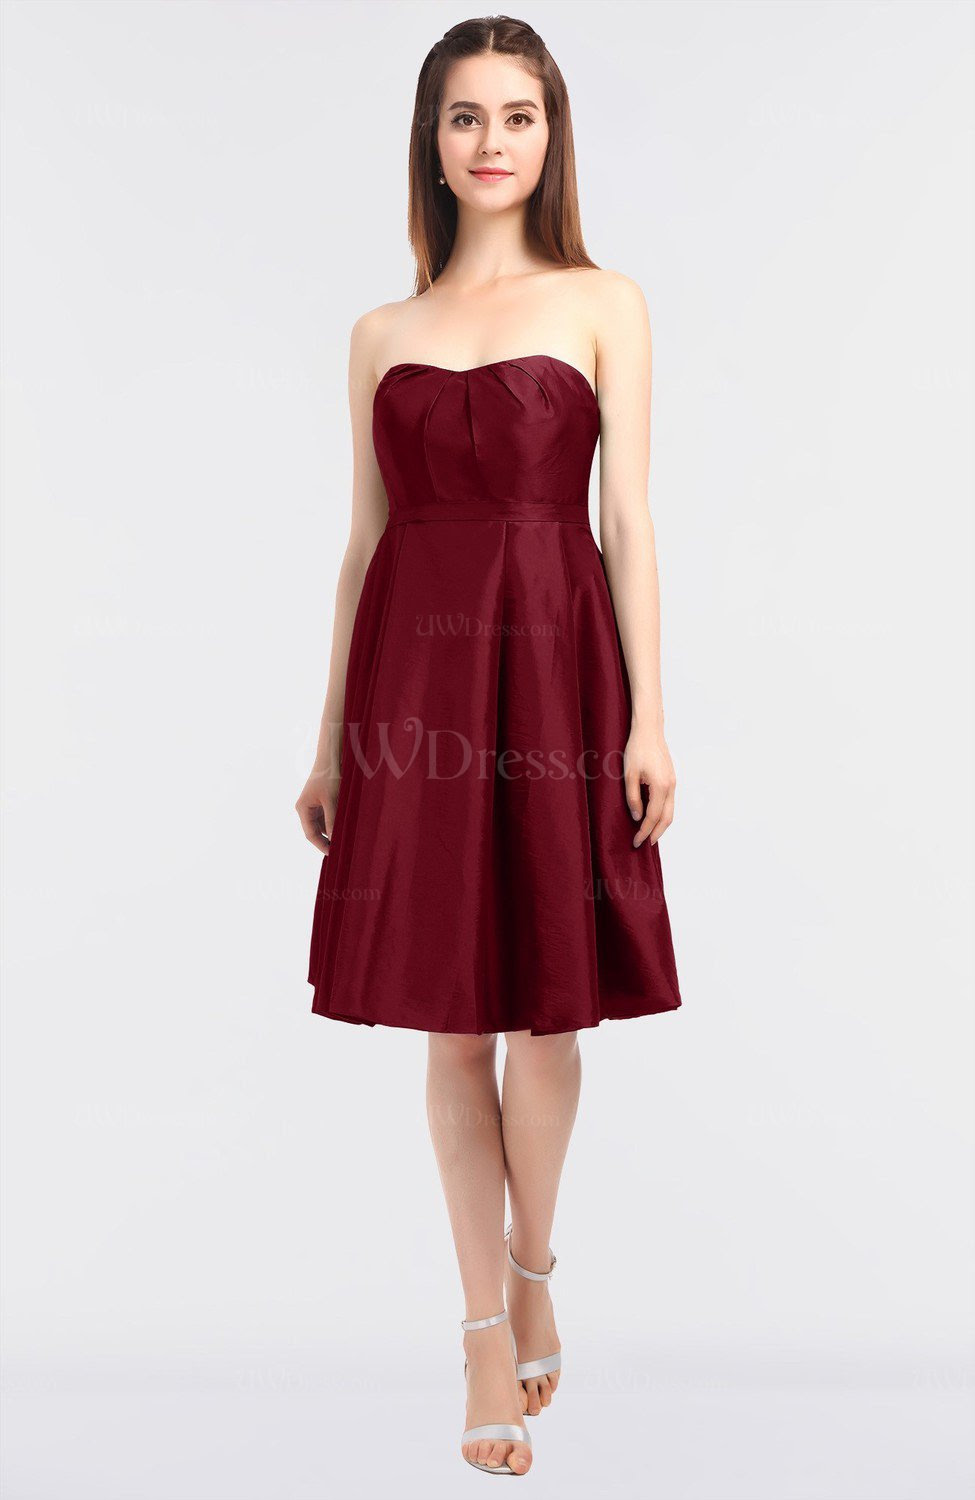 Burgundy Elegant A-line Sleeveless Zip up Knee Length ...